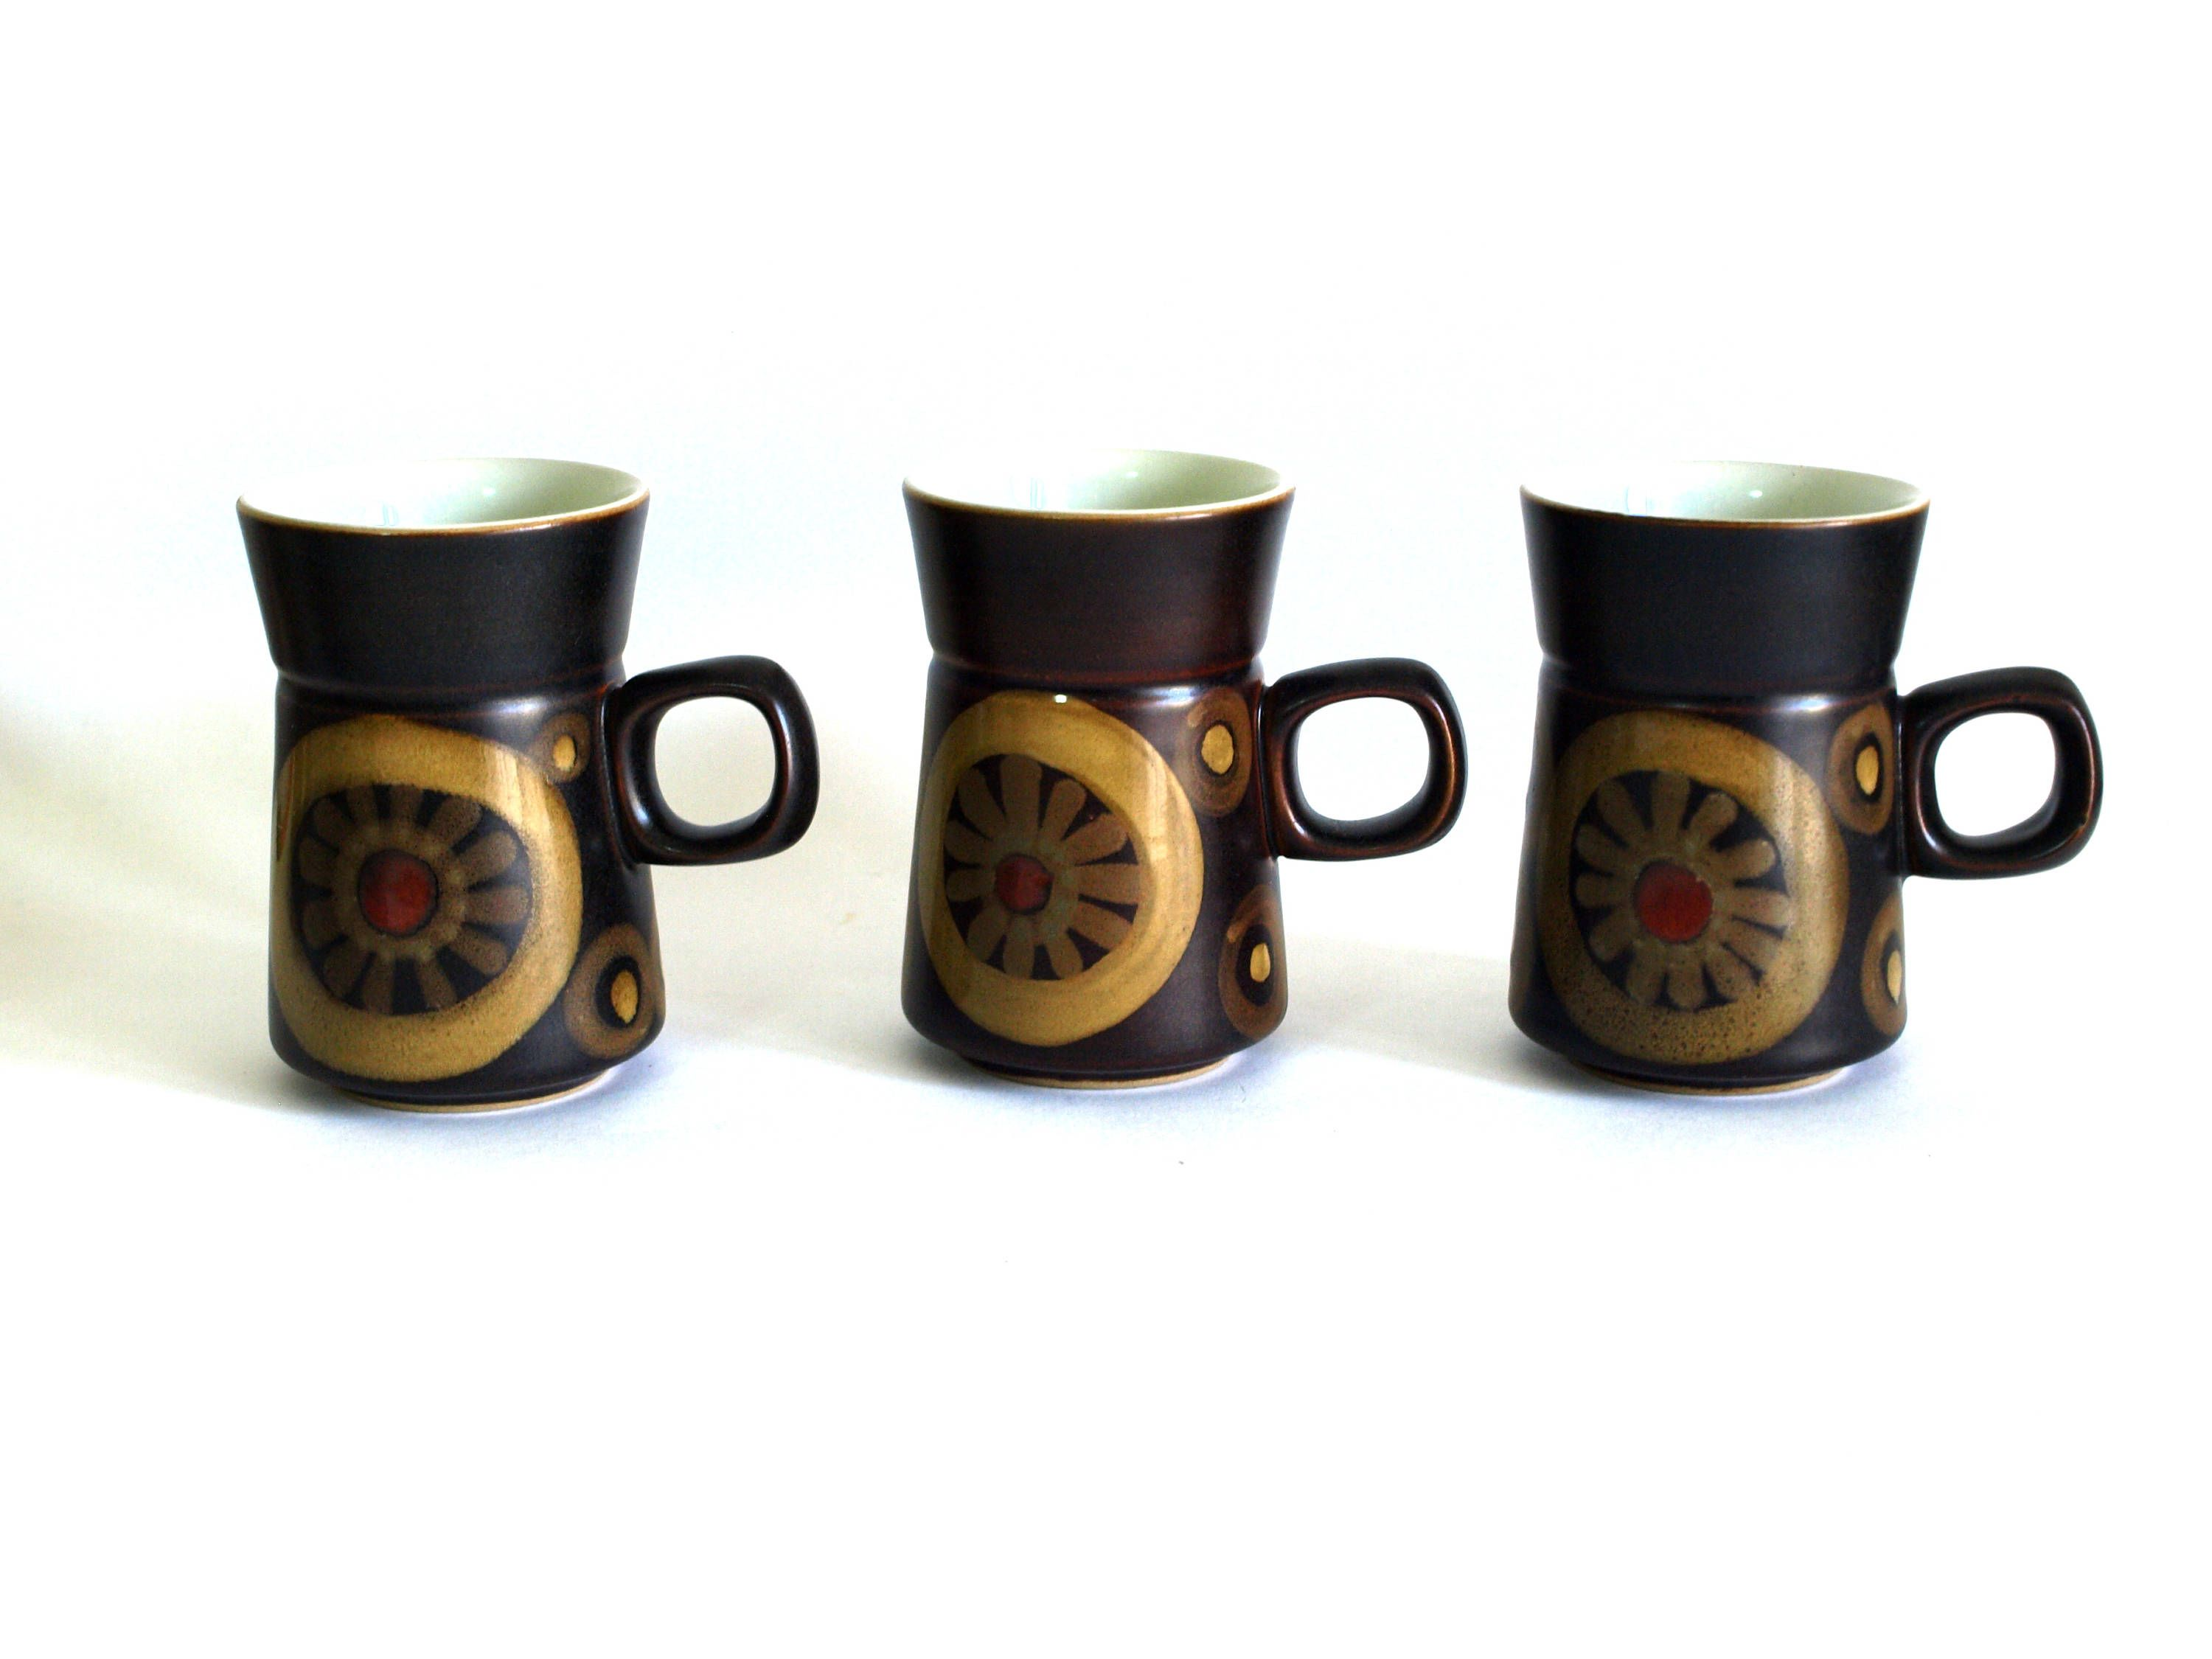 Denby Arabesque Coffee Mugs Vintage Retro Mod Design Set Of